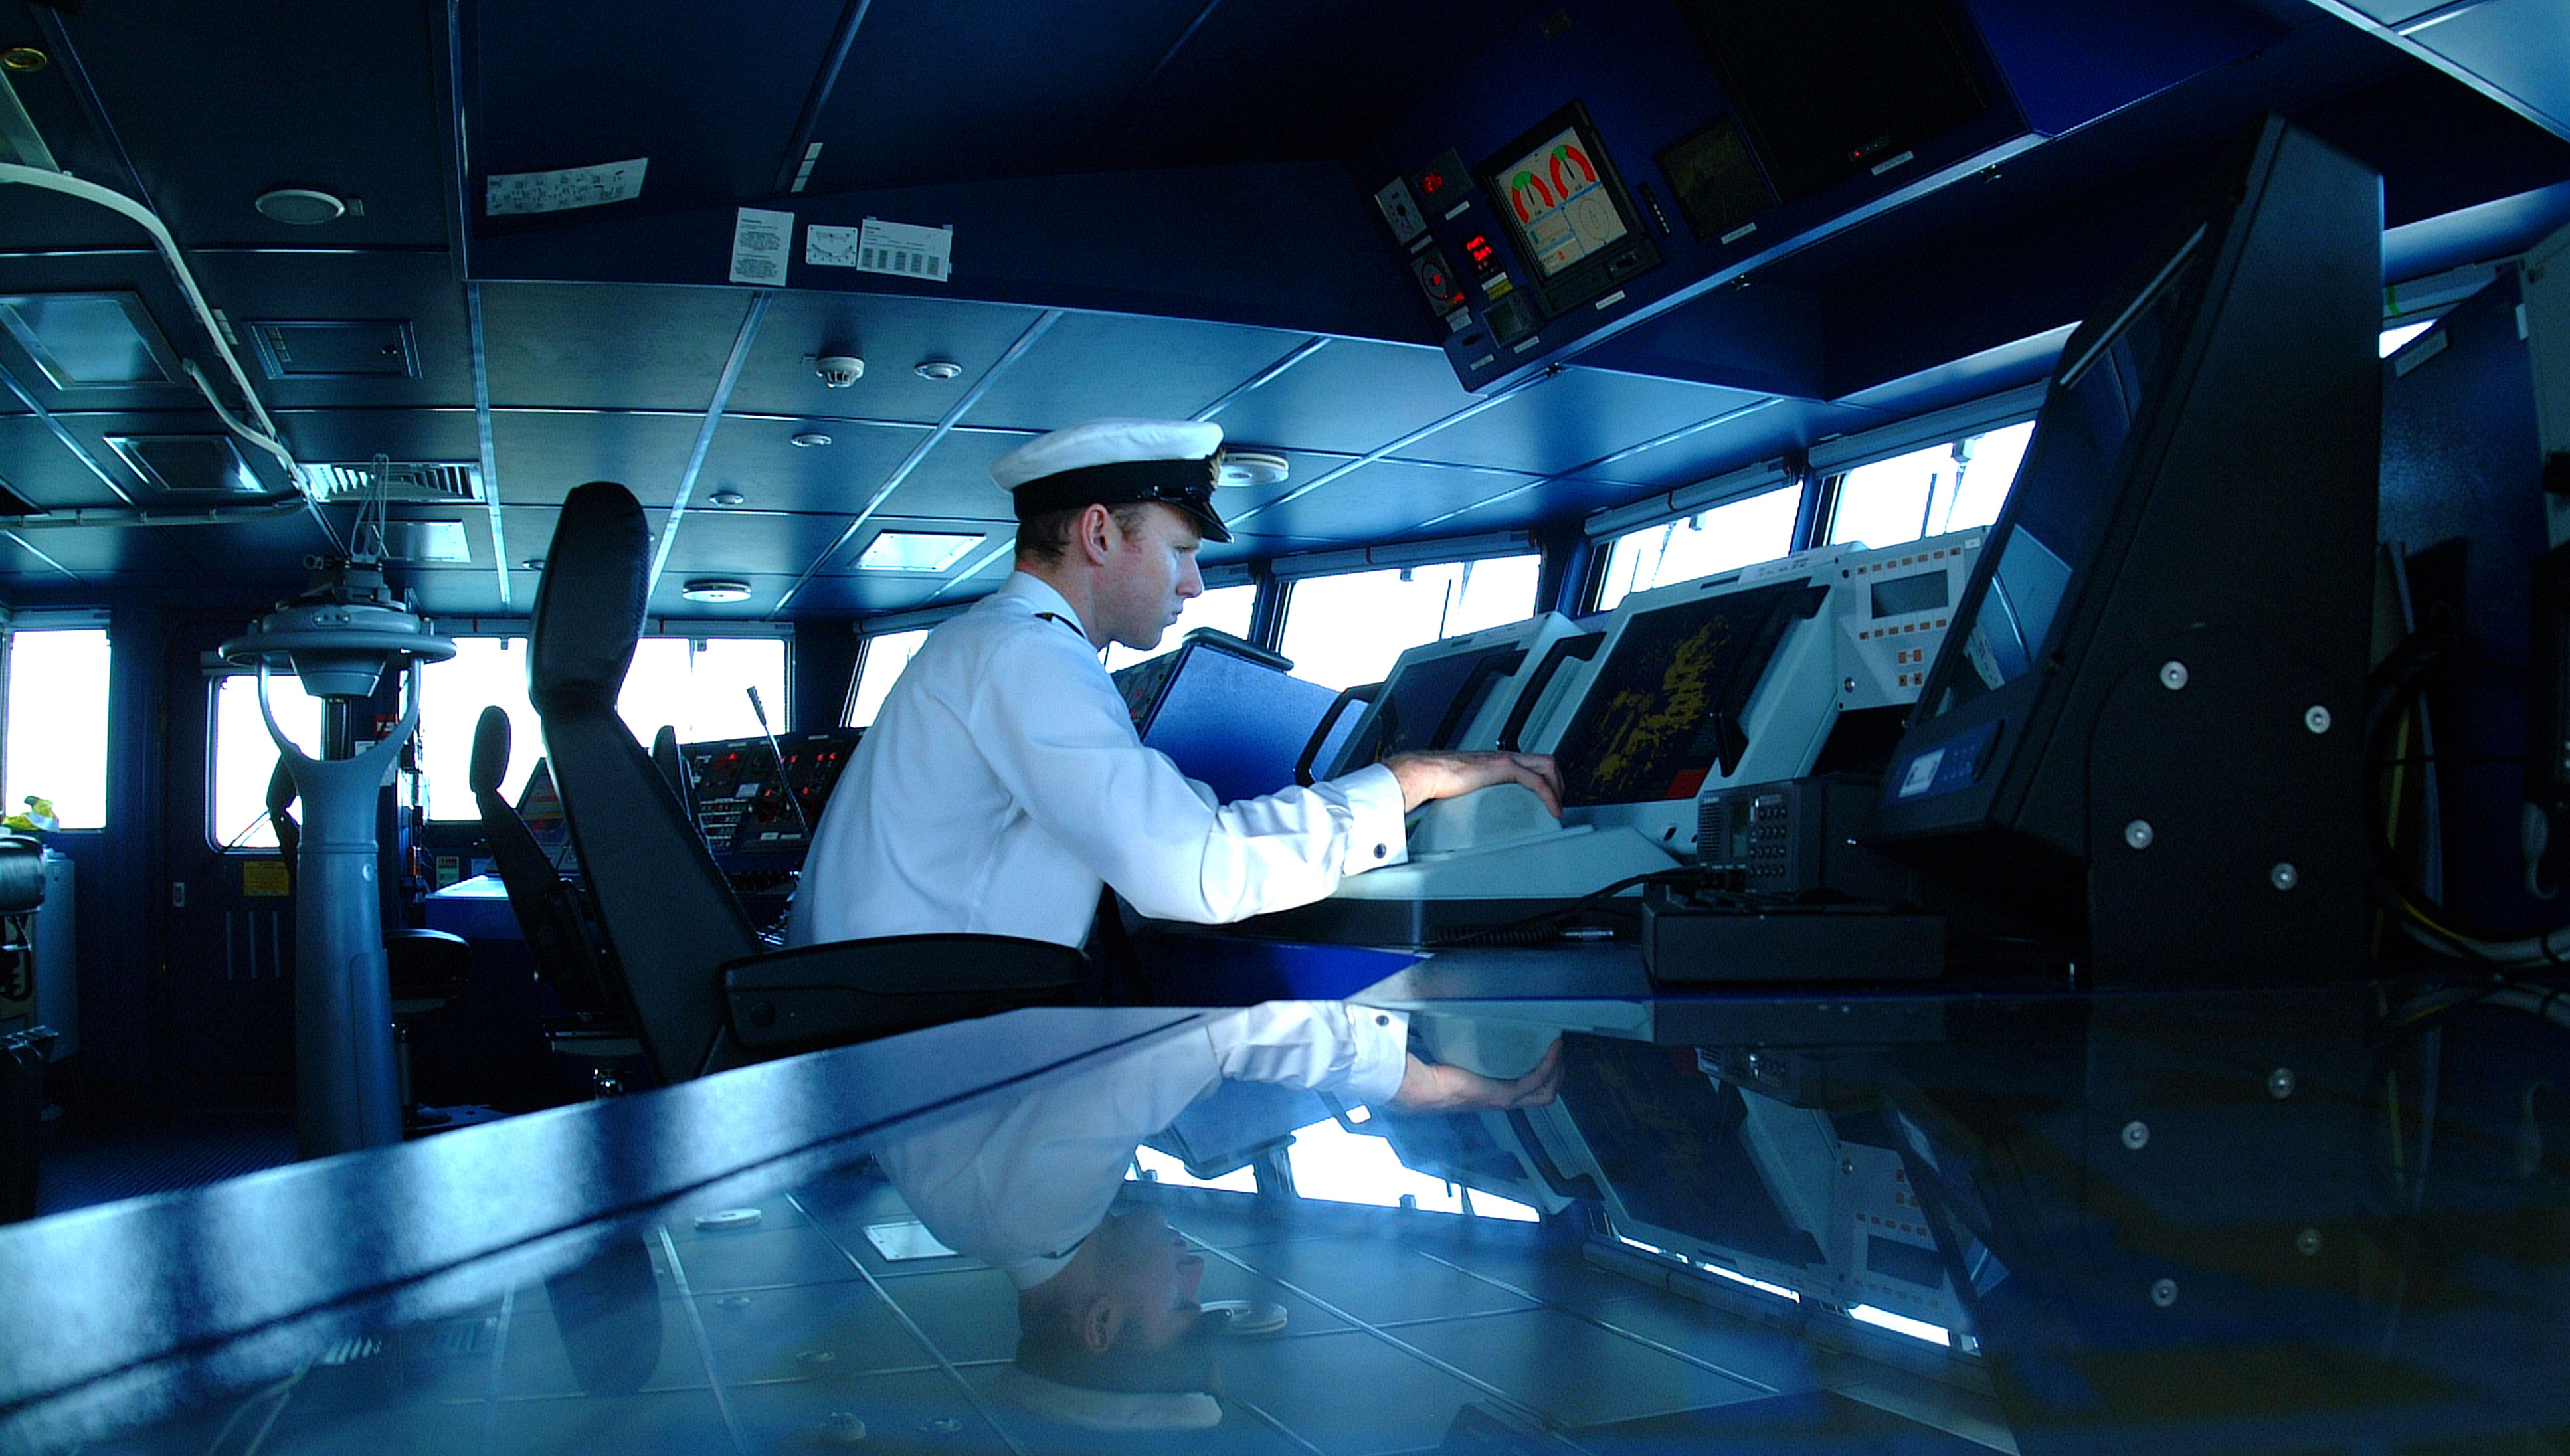 Tech-savvy school leavers will be attracted to seafaring careers as